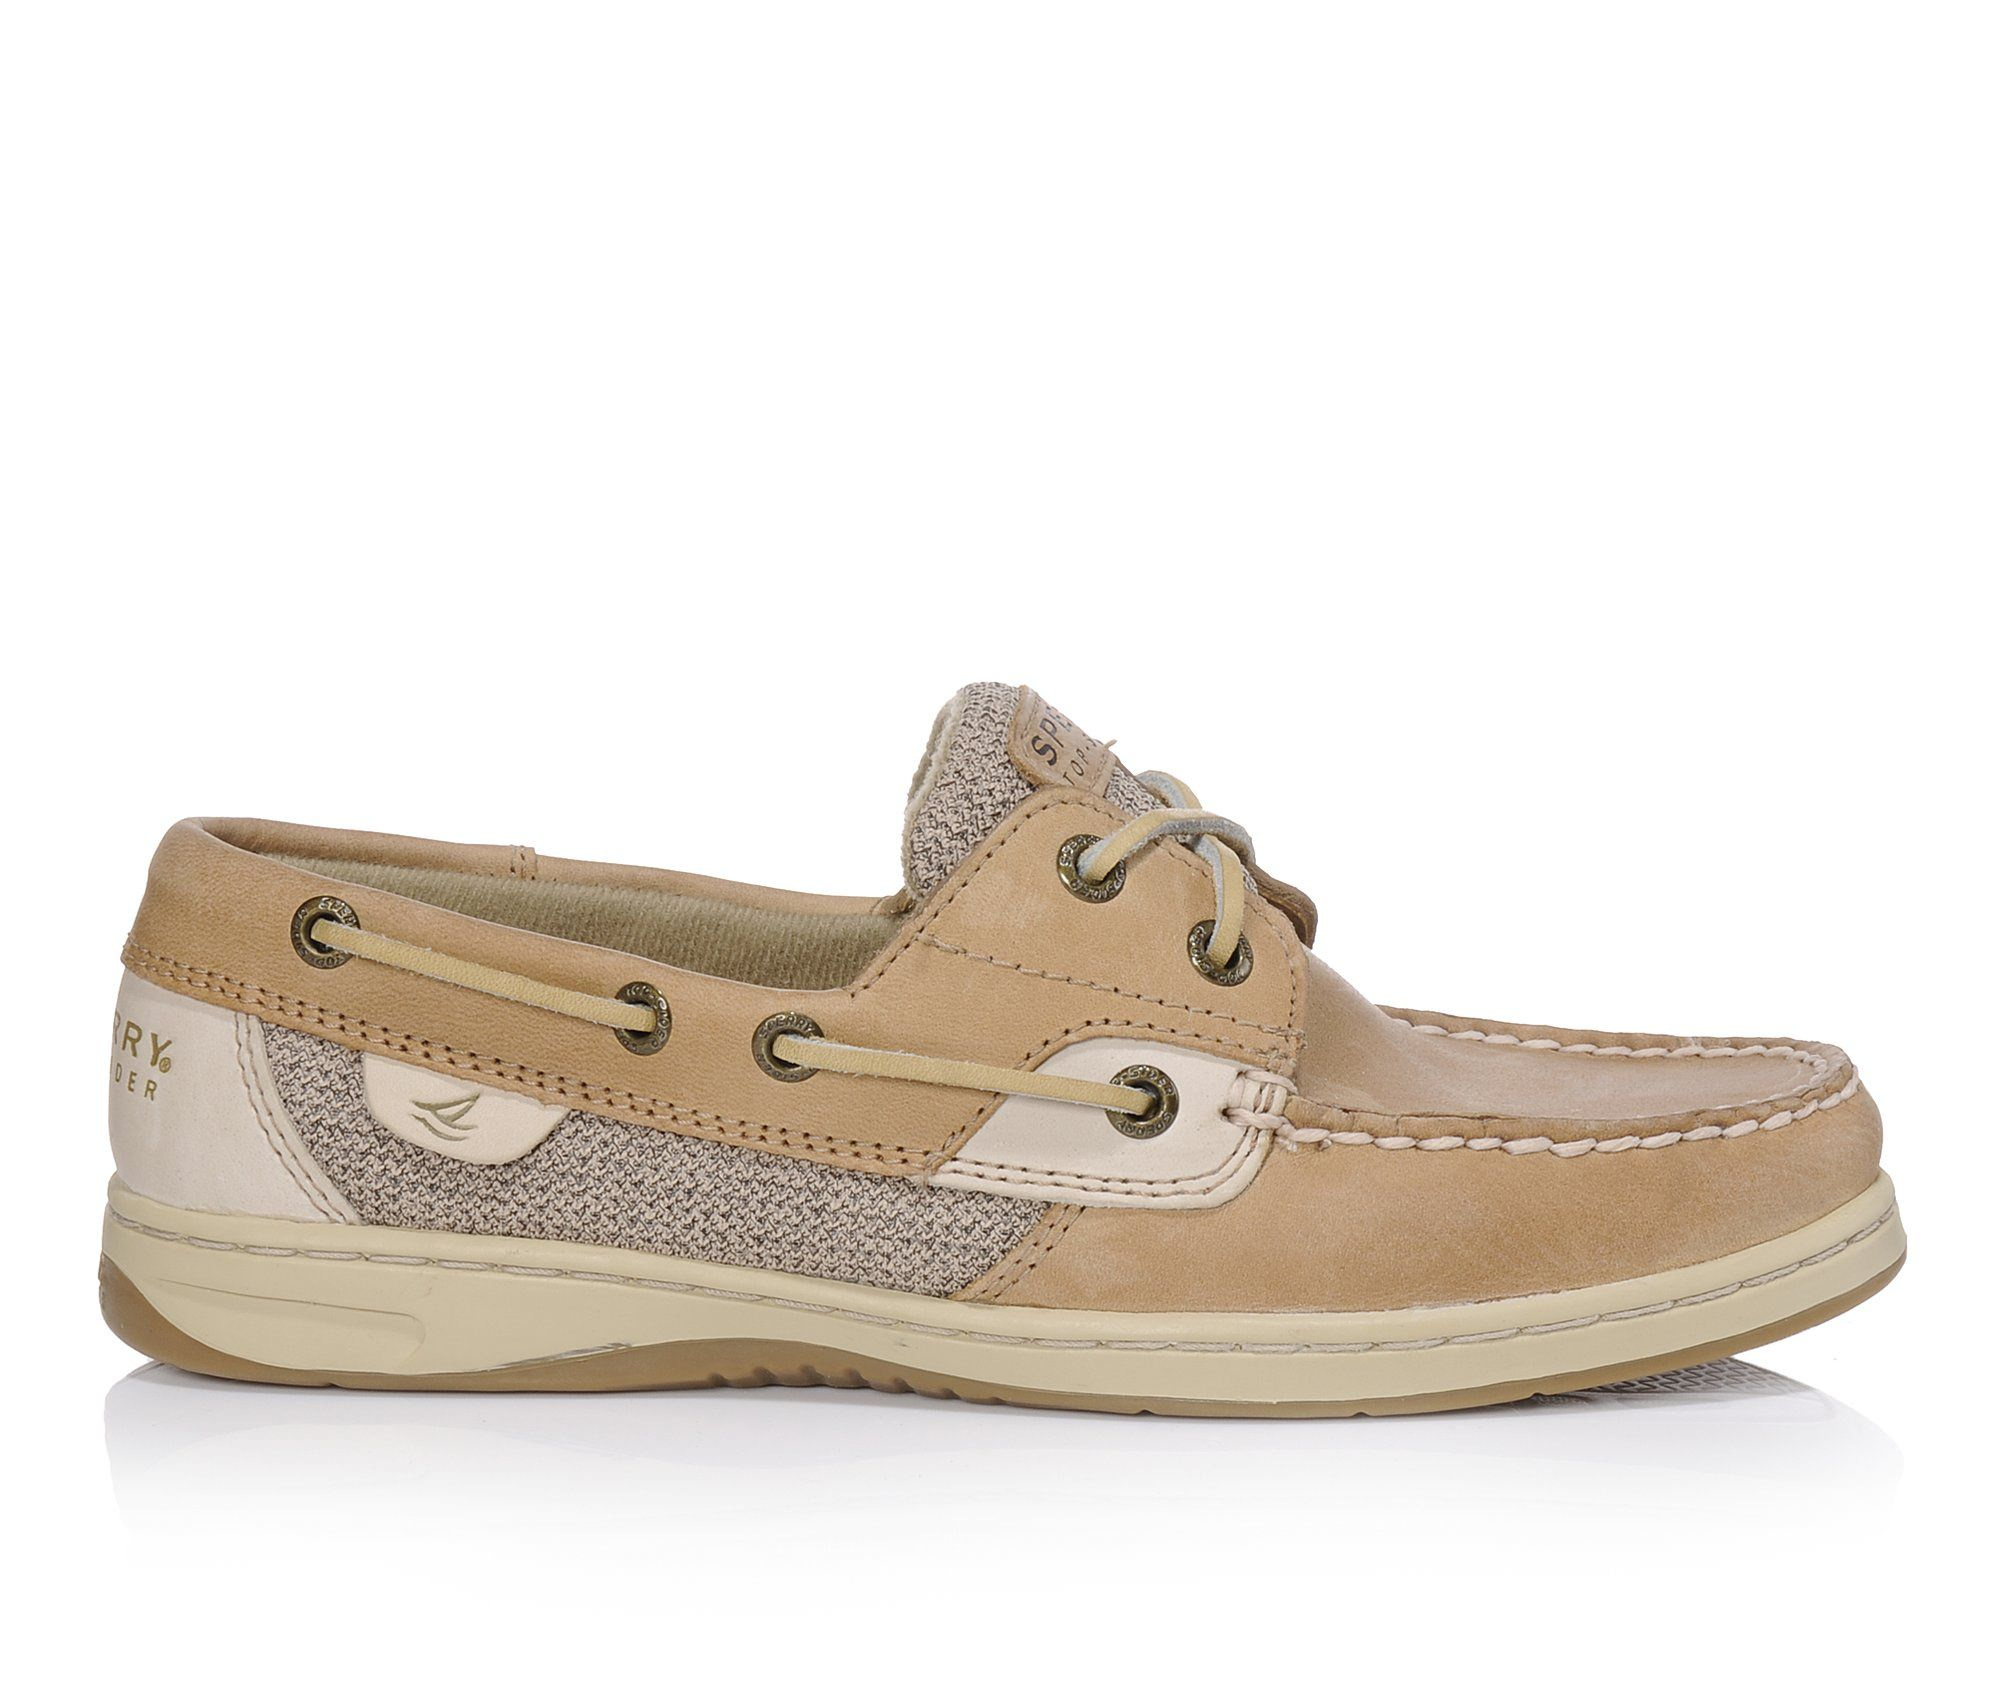 Sperry Bluefish Women's Shoe (Beige Leather)